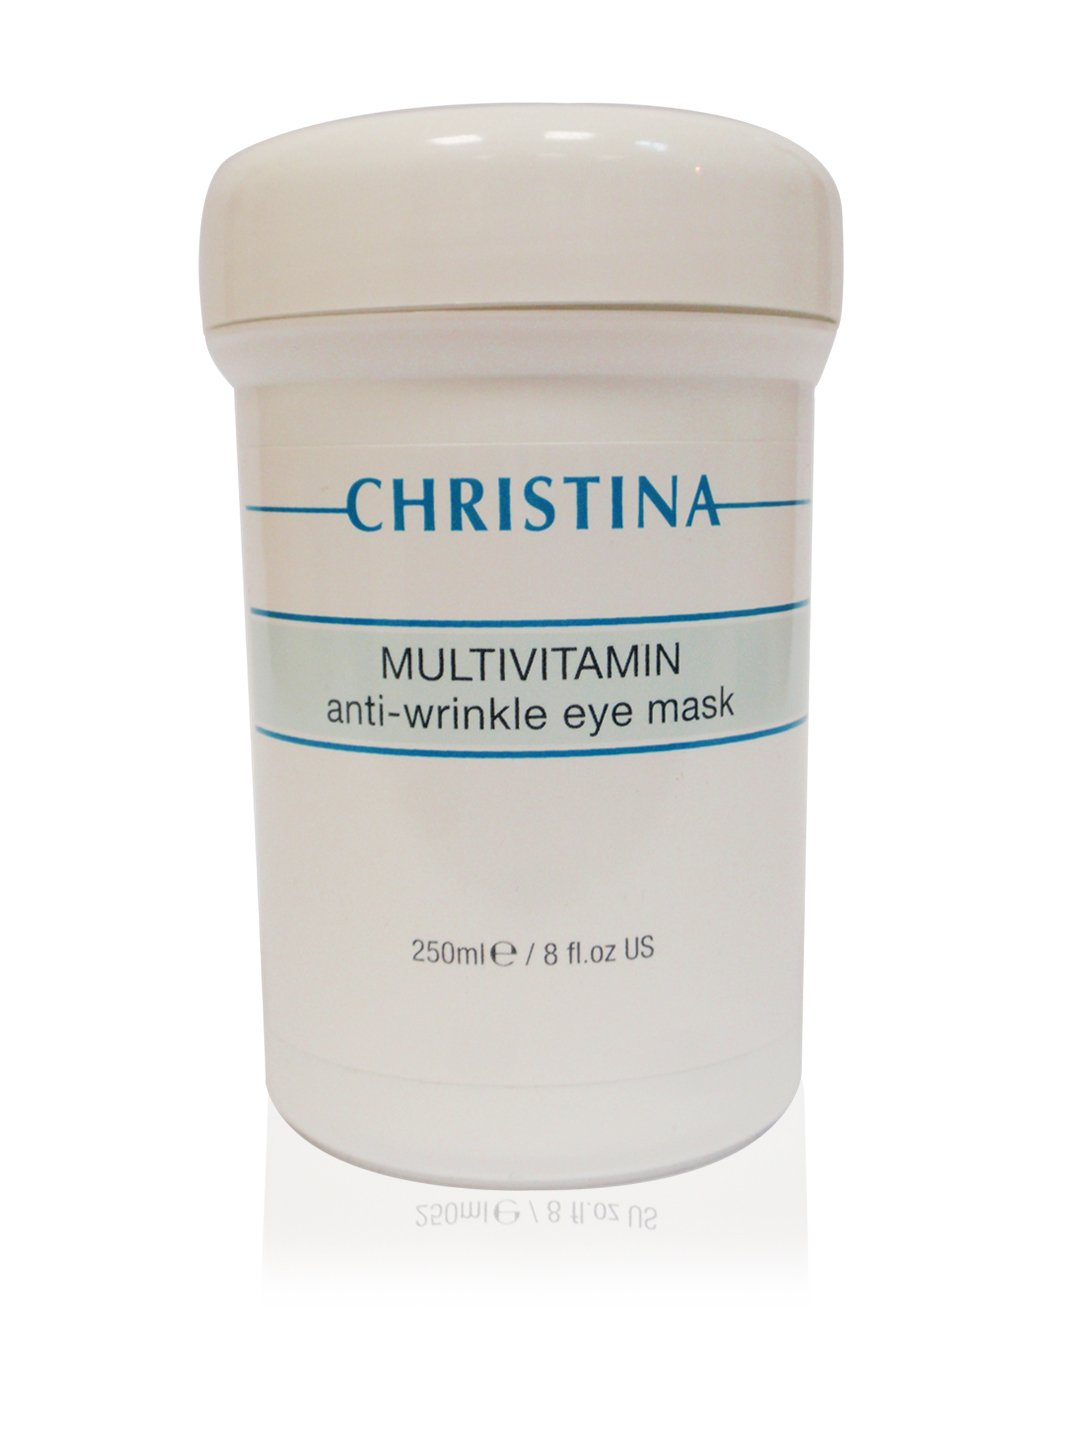 Christina Eye Treatment Multivitamin Anti Wrinkle Eye Mask 250ml 8.5fl.oz